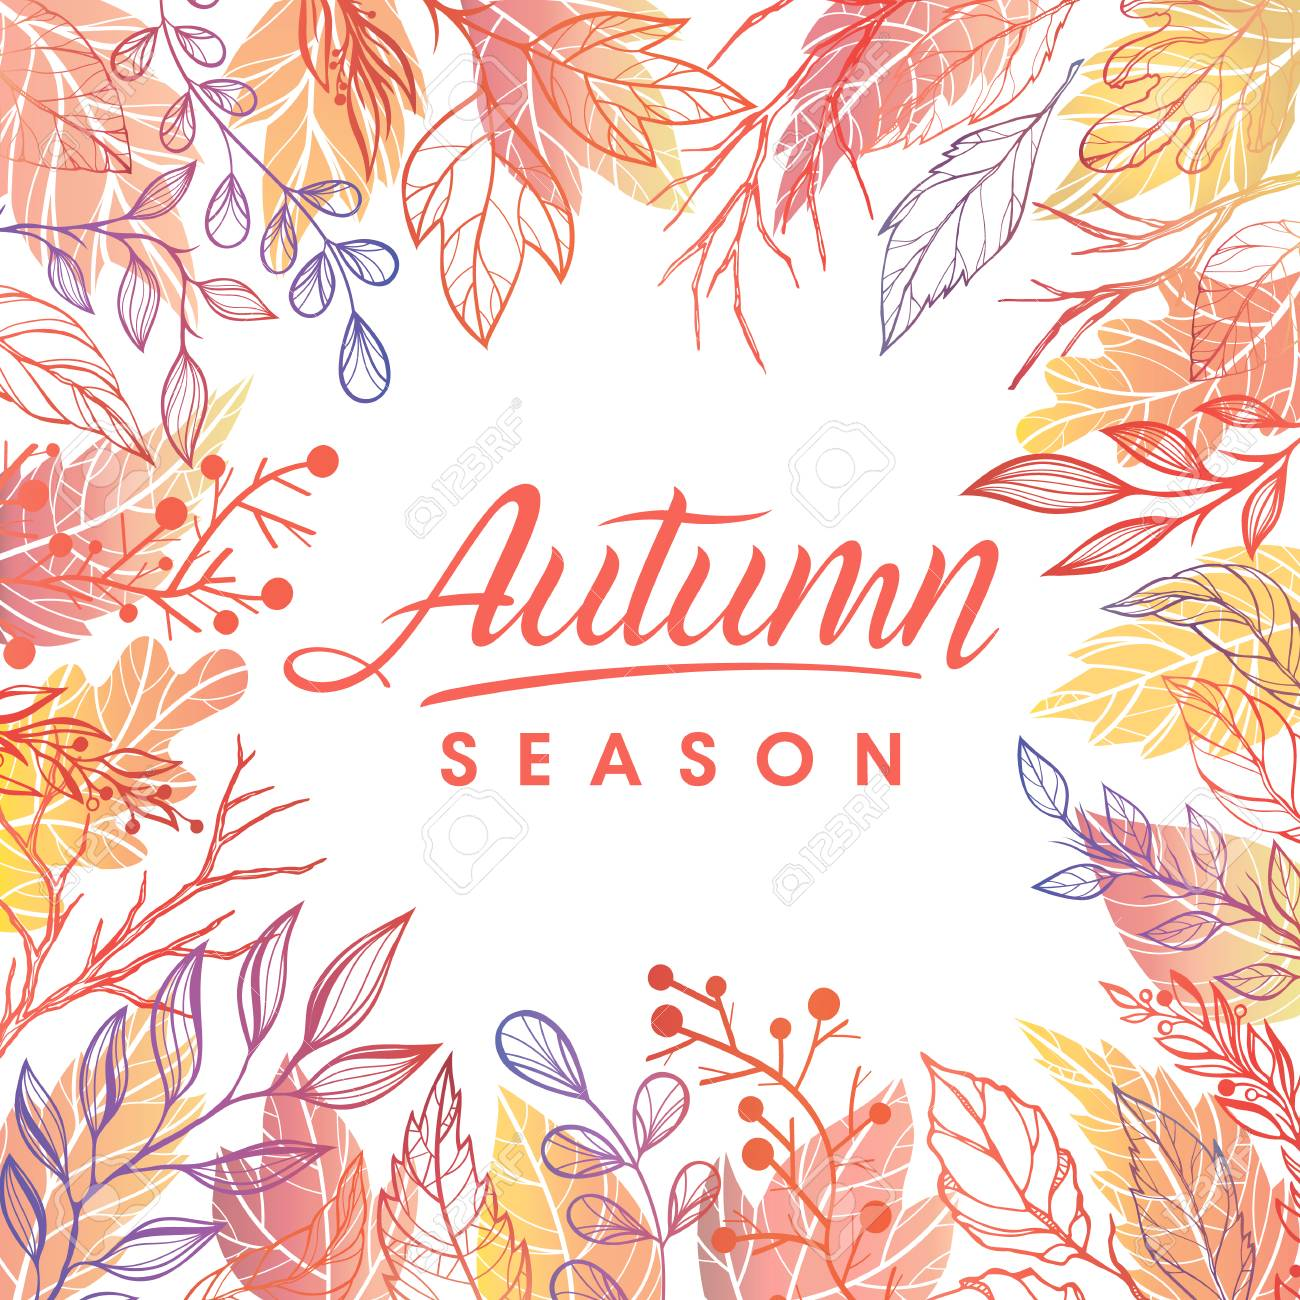 Autumn seasonhand drawn lettering with leaves in fall colors autumn seasonhand drawn lettering with leaves in fall colorsasons greetings card perfect m4hsunfo